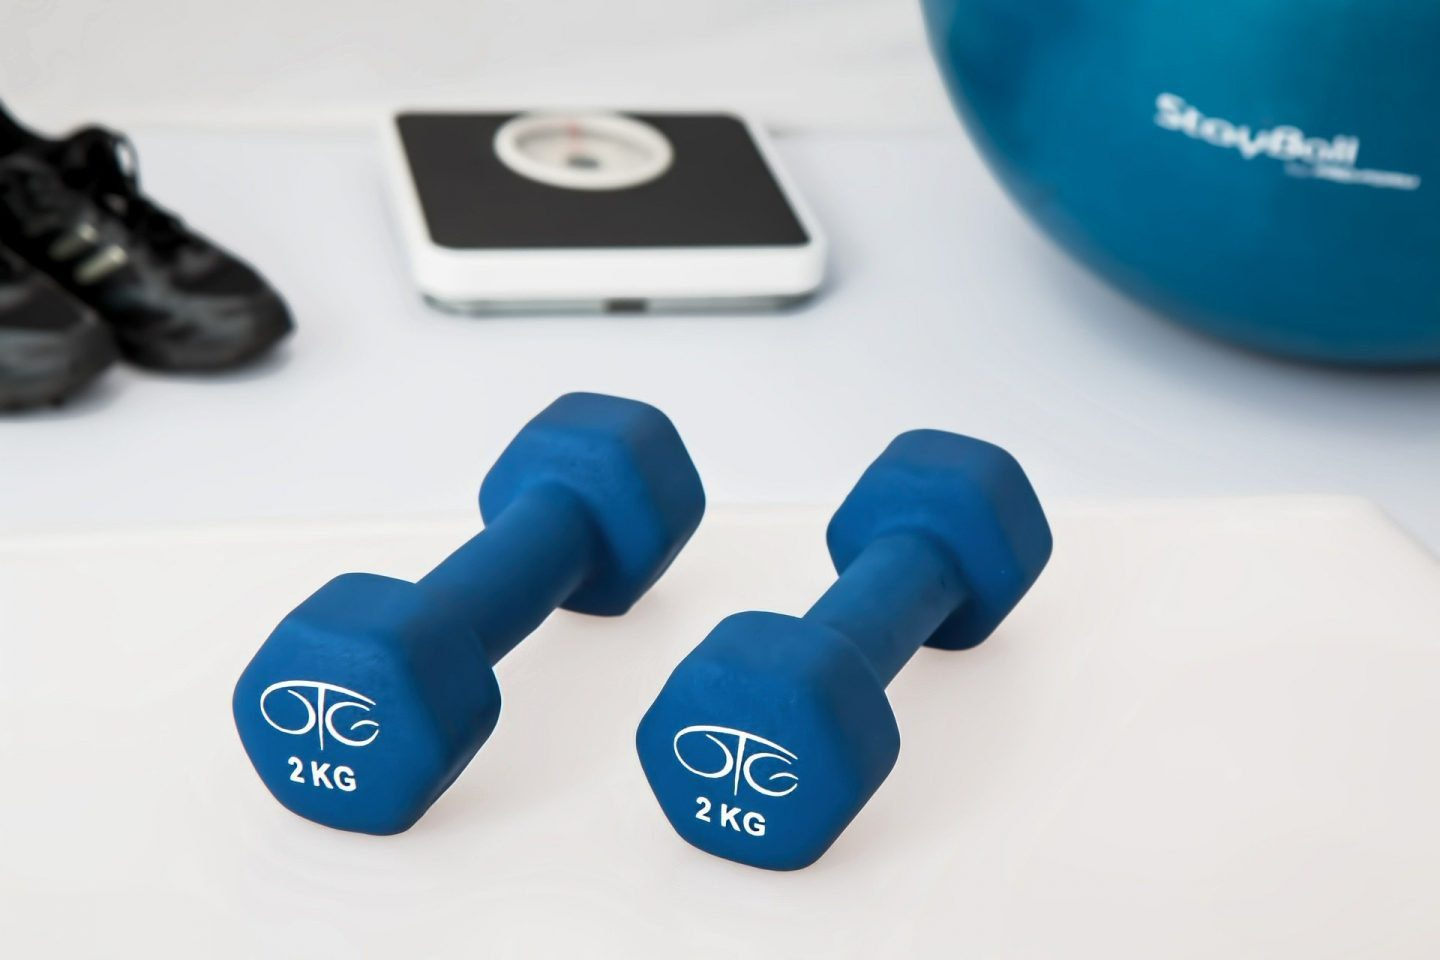 A set of 2kg hand weights, with a set of scales, trainers and yoga ball in the background